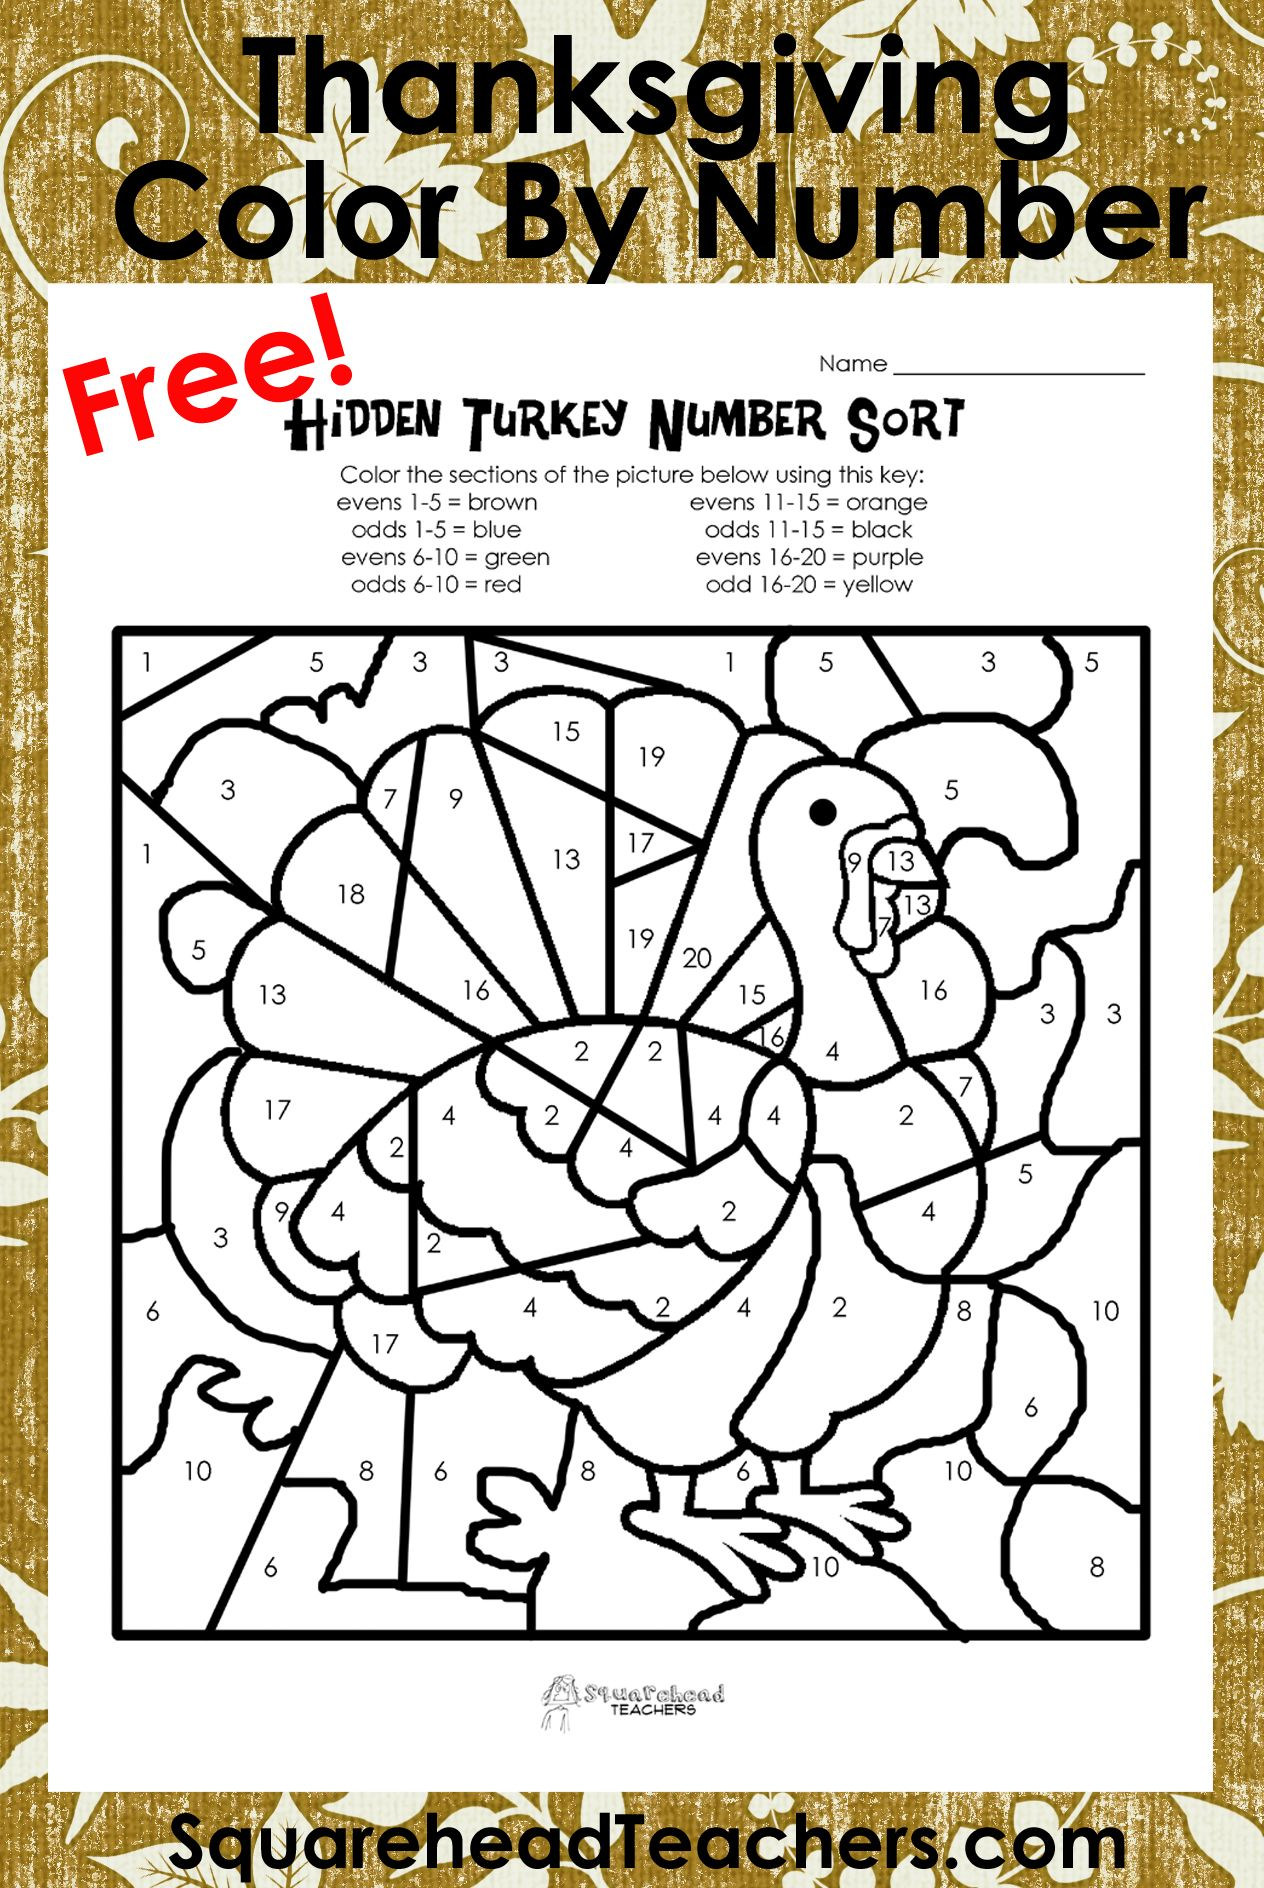 Odd/Even Turkeys (Free worksheet!) | Squarehead Teachers ...